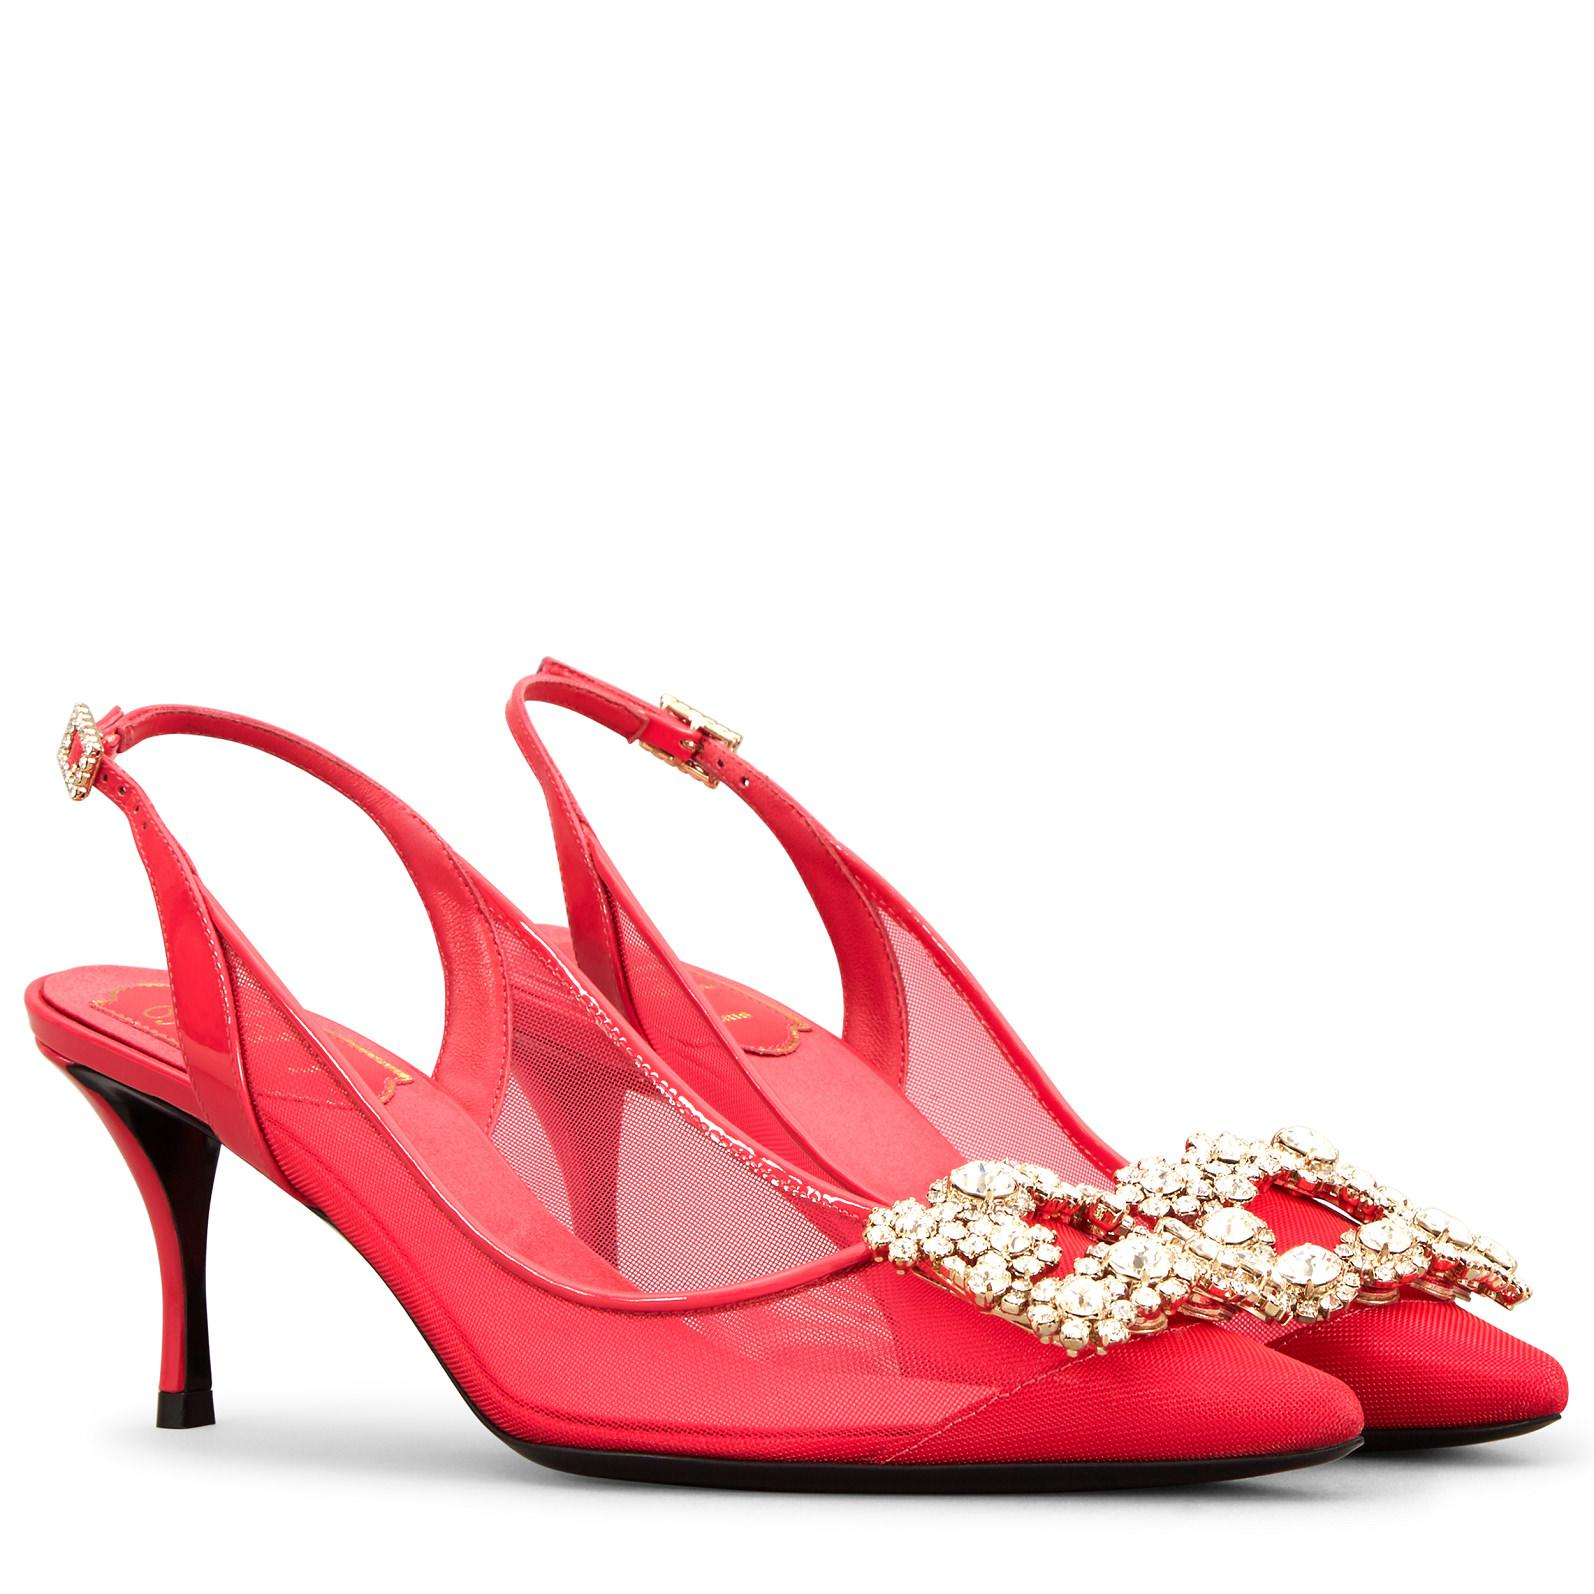 Roger Vivier Flower Strass Net Sling Back Pump